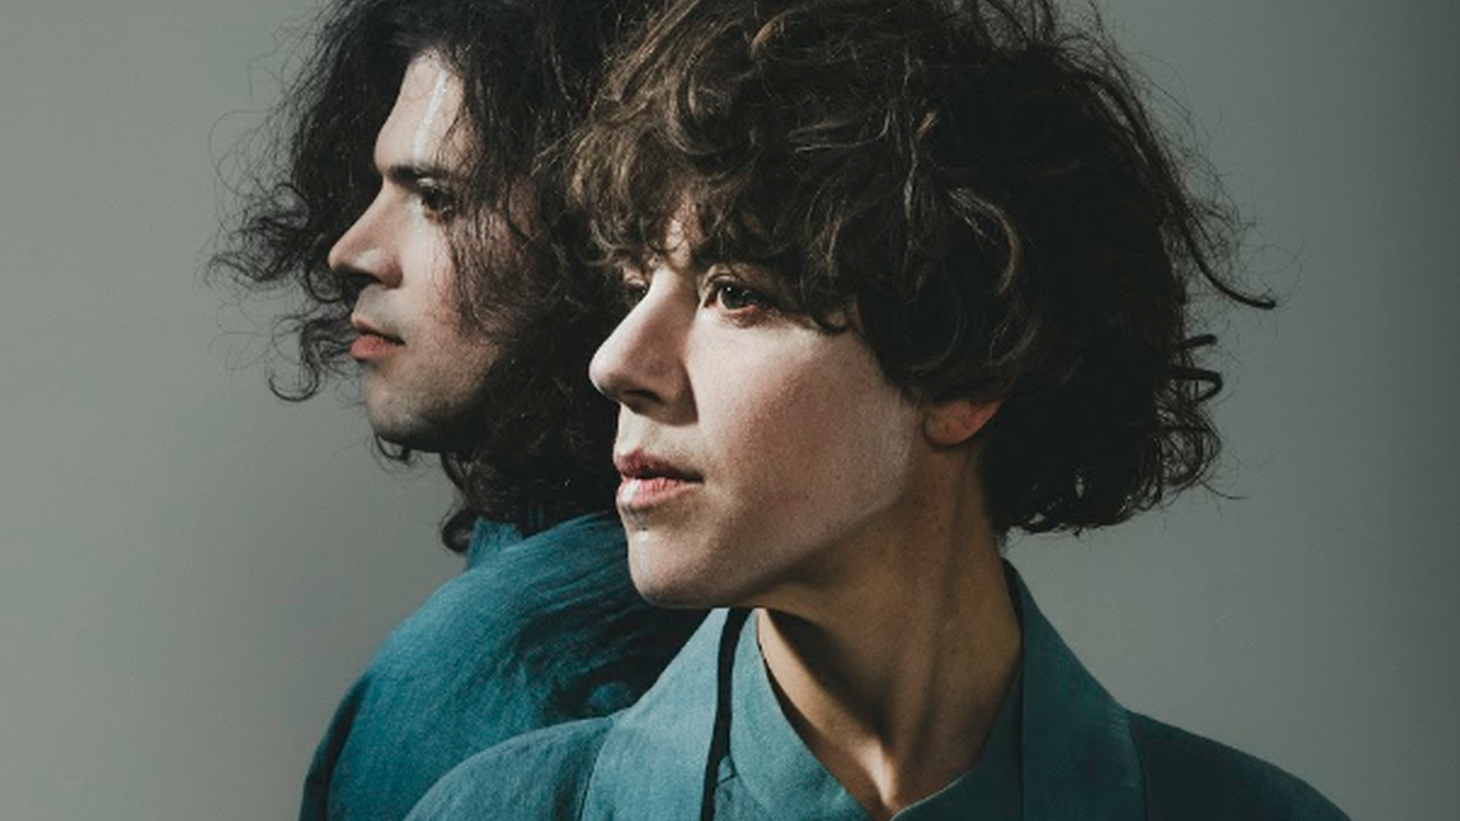 """One of the most anticipated albums of 2018 came courtesy of Merrill Garbus aka Tune-Yards. If you haven't seen her live, check out her latest MBE session. She performed new songs, including """"Heart Attack."""""""